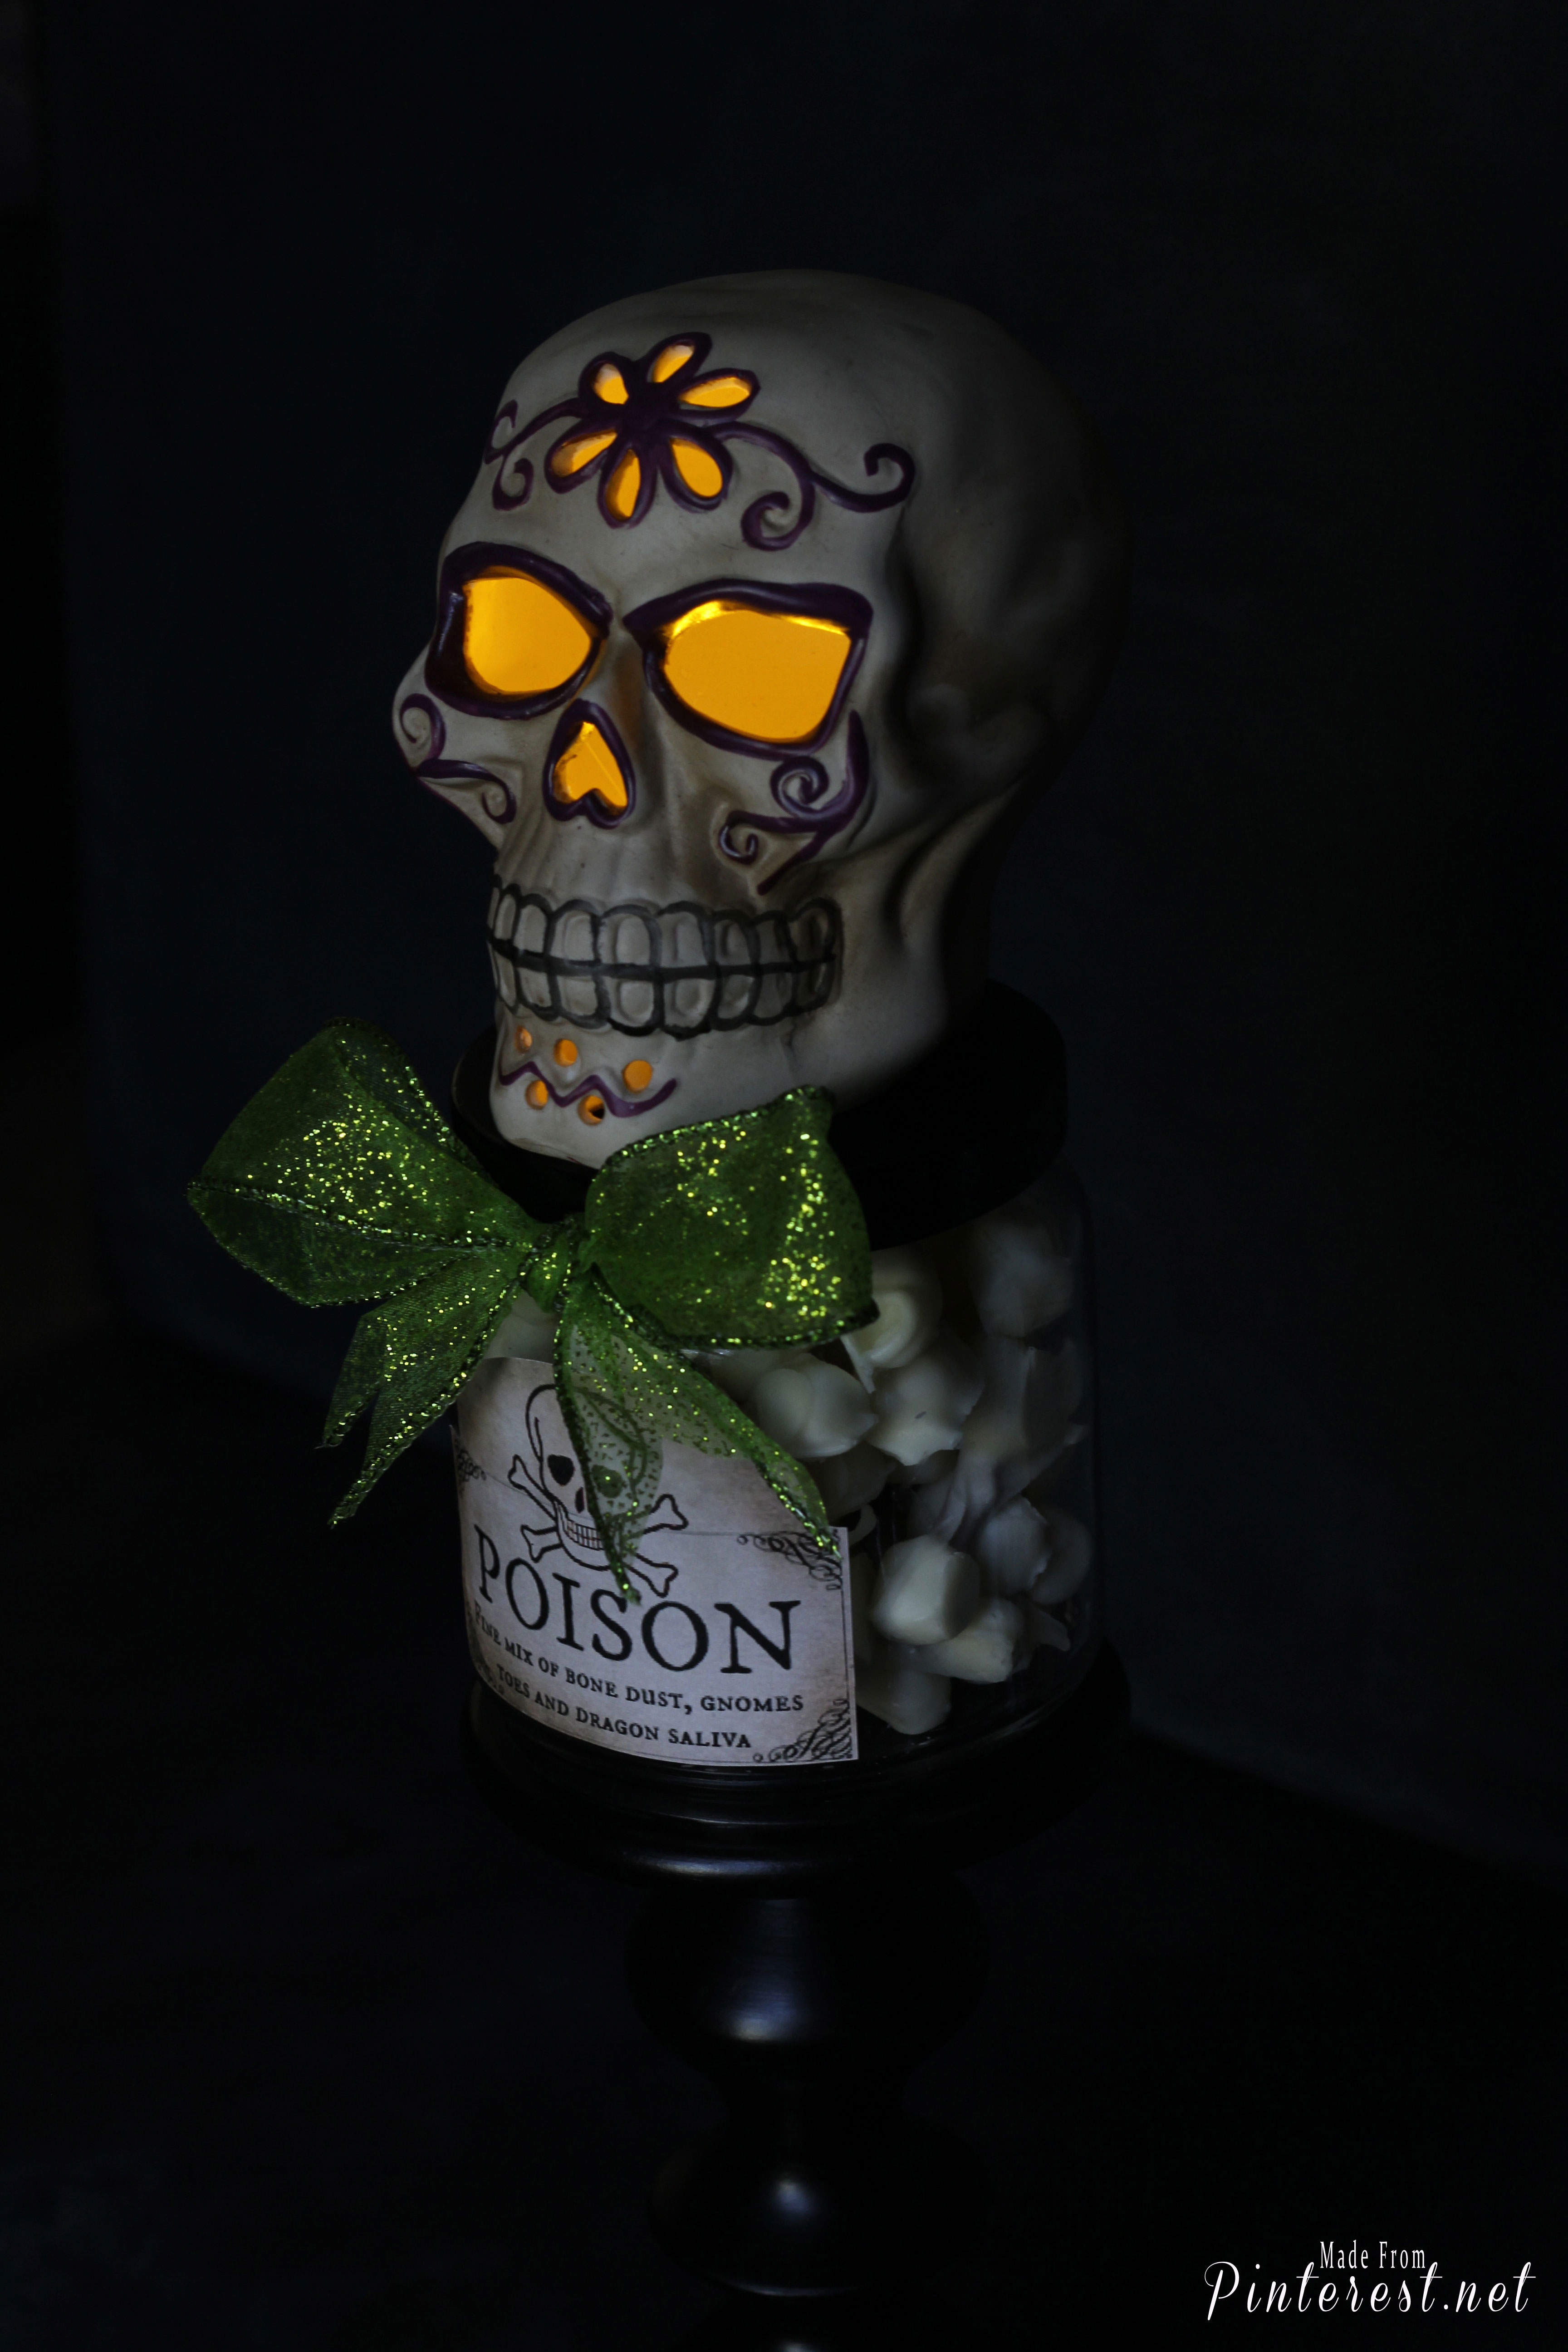 Upcycled Candle Jar - Make a fun, creepy Halloween decoration with your used candle jars! #Halloween #Halloween Decoration